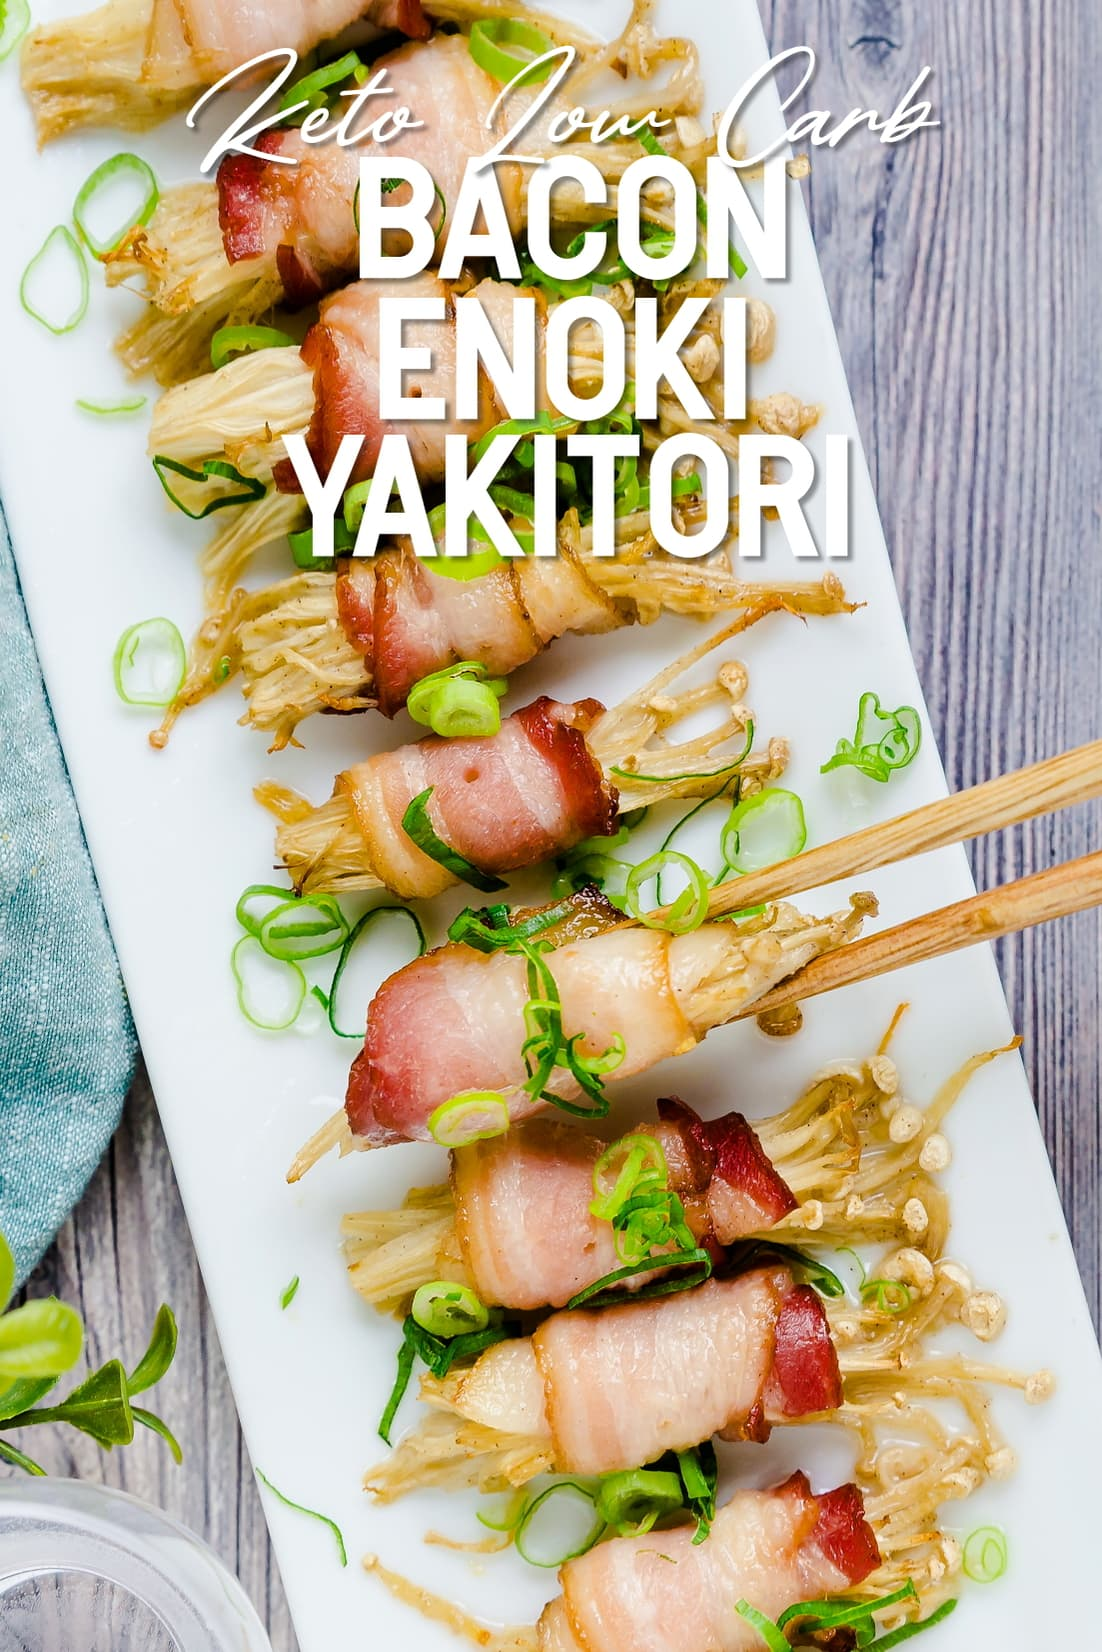 Bacon Wrapped Enoki Yakitori being picked up with chopsticks